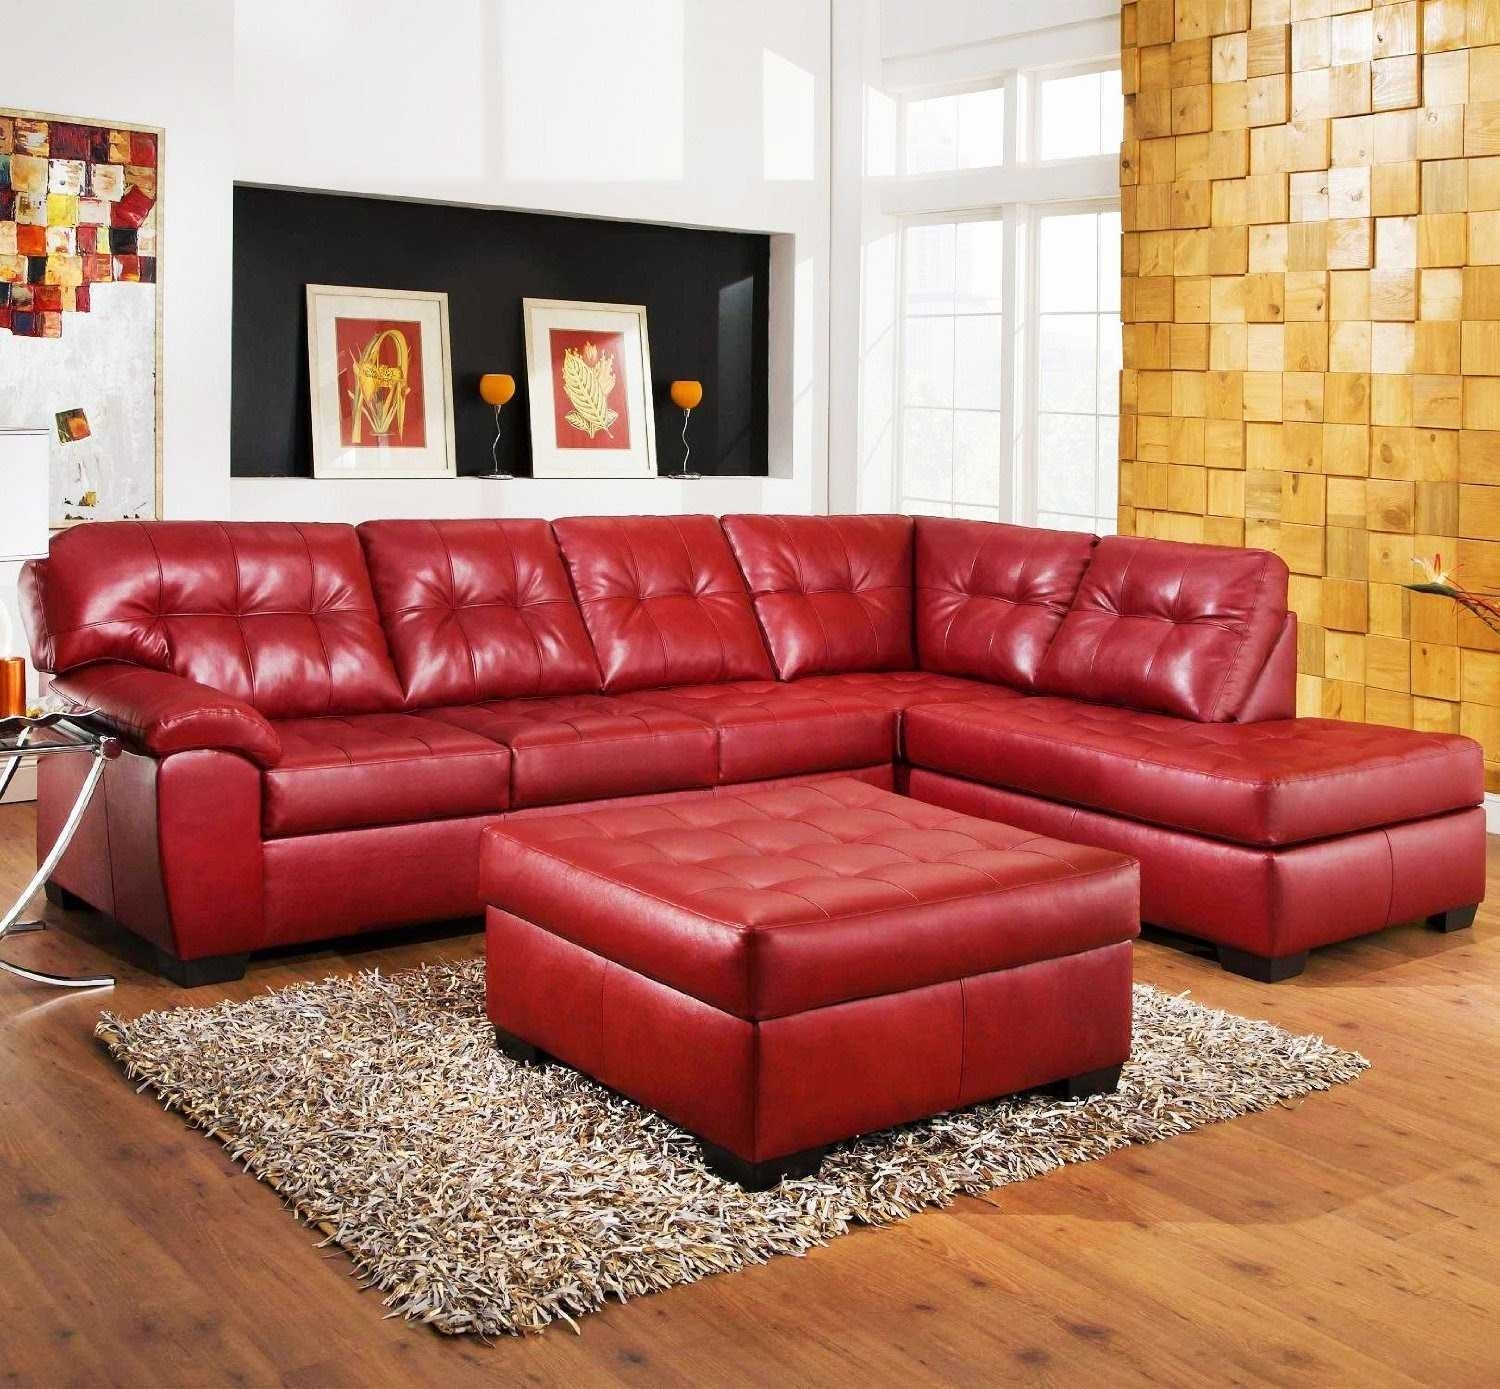 The Best Sectional Sofas Rooms Go And Ideas Pics Of To Trend Popular With Regard To Sectional Sofas At Rooms To Go (View 6 of 10)